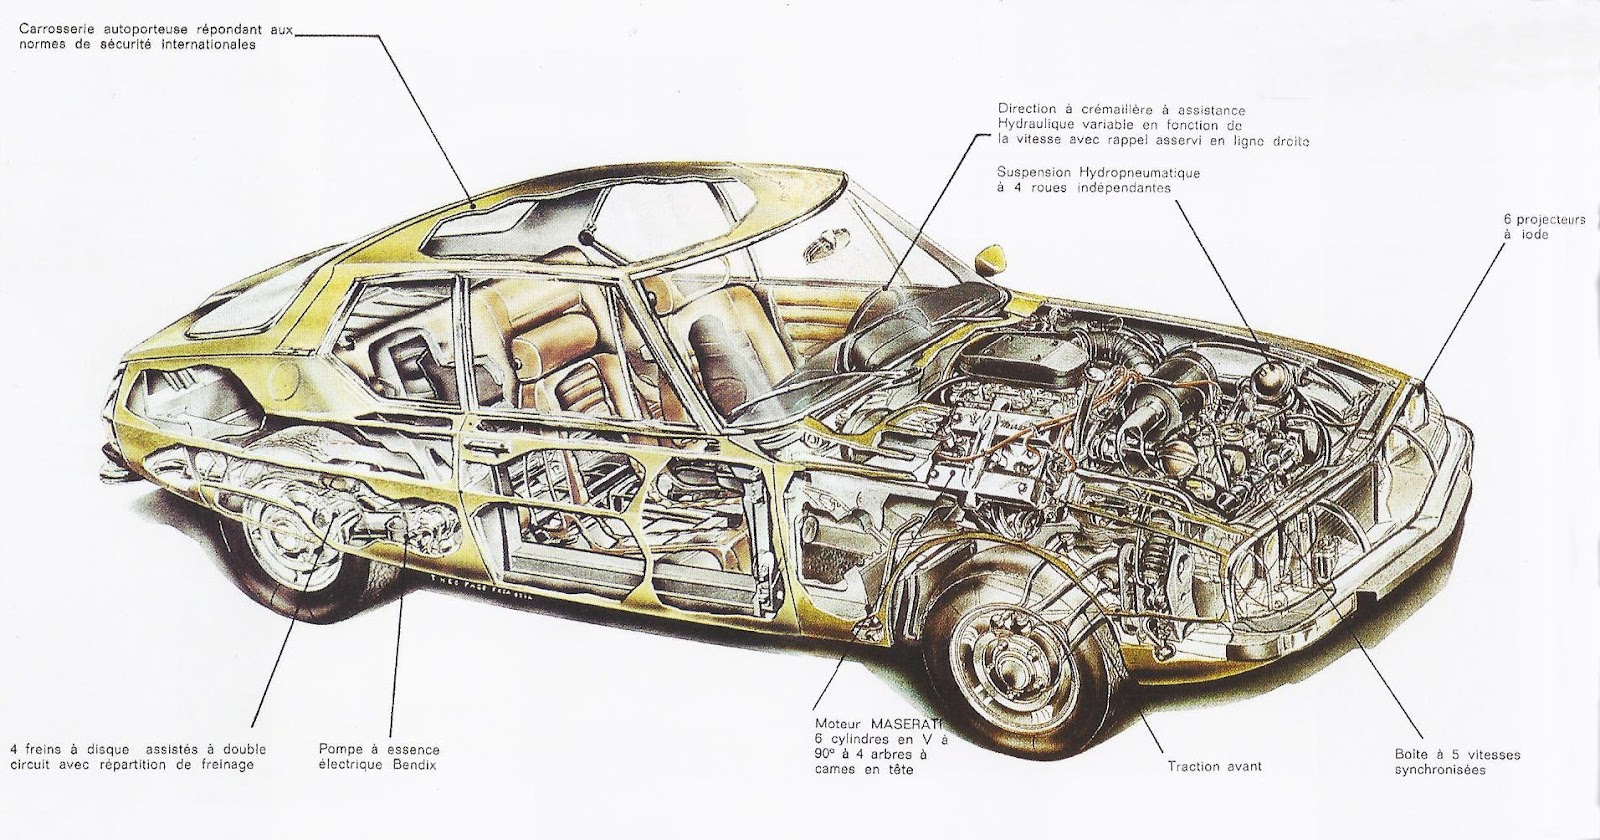 Citroen Sm Cutaway Diagrams Wiring Diagram Will Be A Thing Ds5 The Car Hobby Rh Thecarhobby Blogspot Com 2cv Maserati